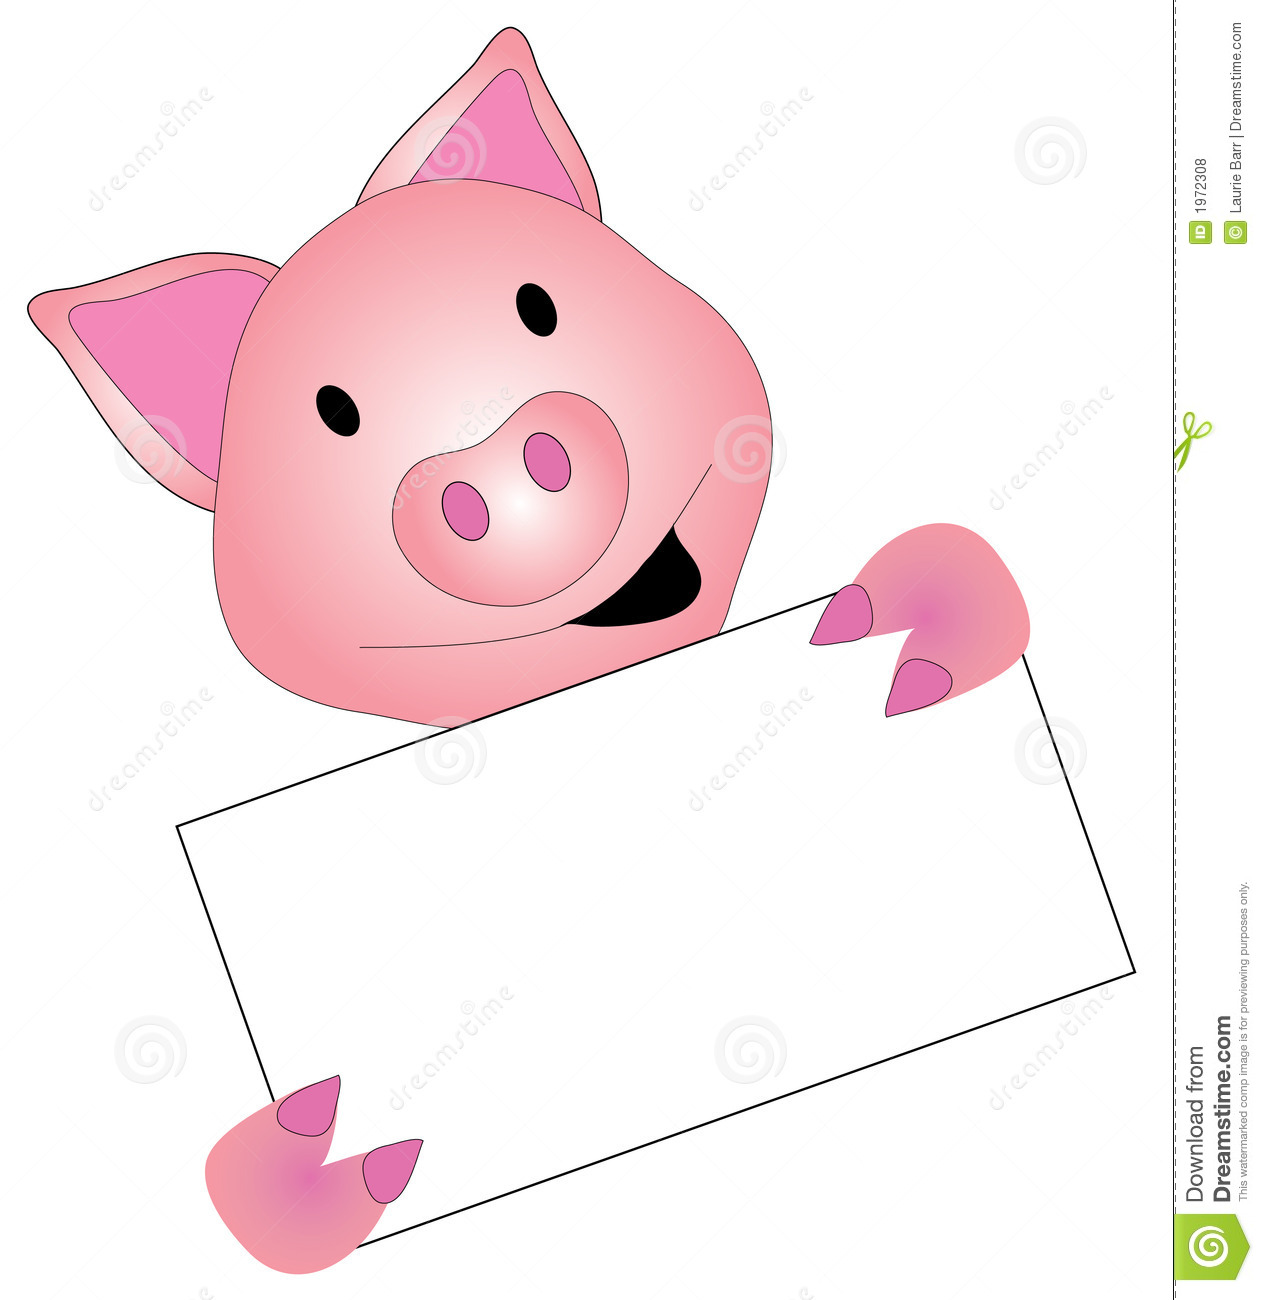 Pig Graphic Holding A Sign Royalty Free Stock Photos - Image: 1972308